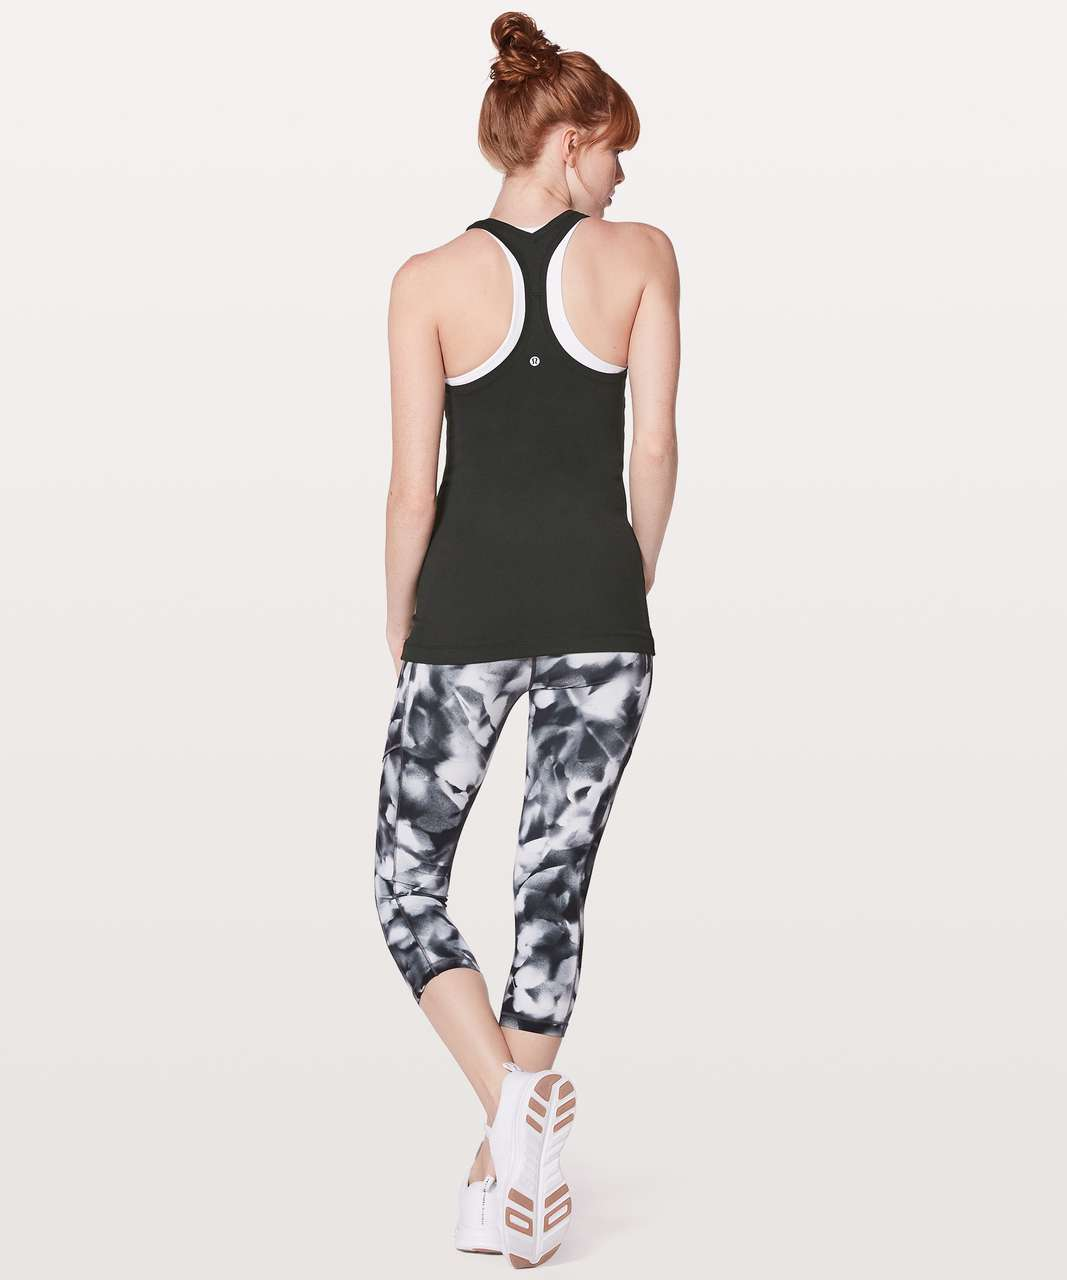 Lululemon Cool Racerback II *Nulu - Black (First Release)